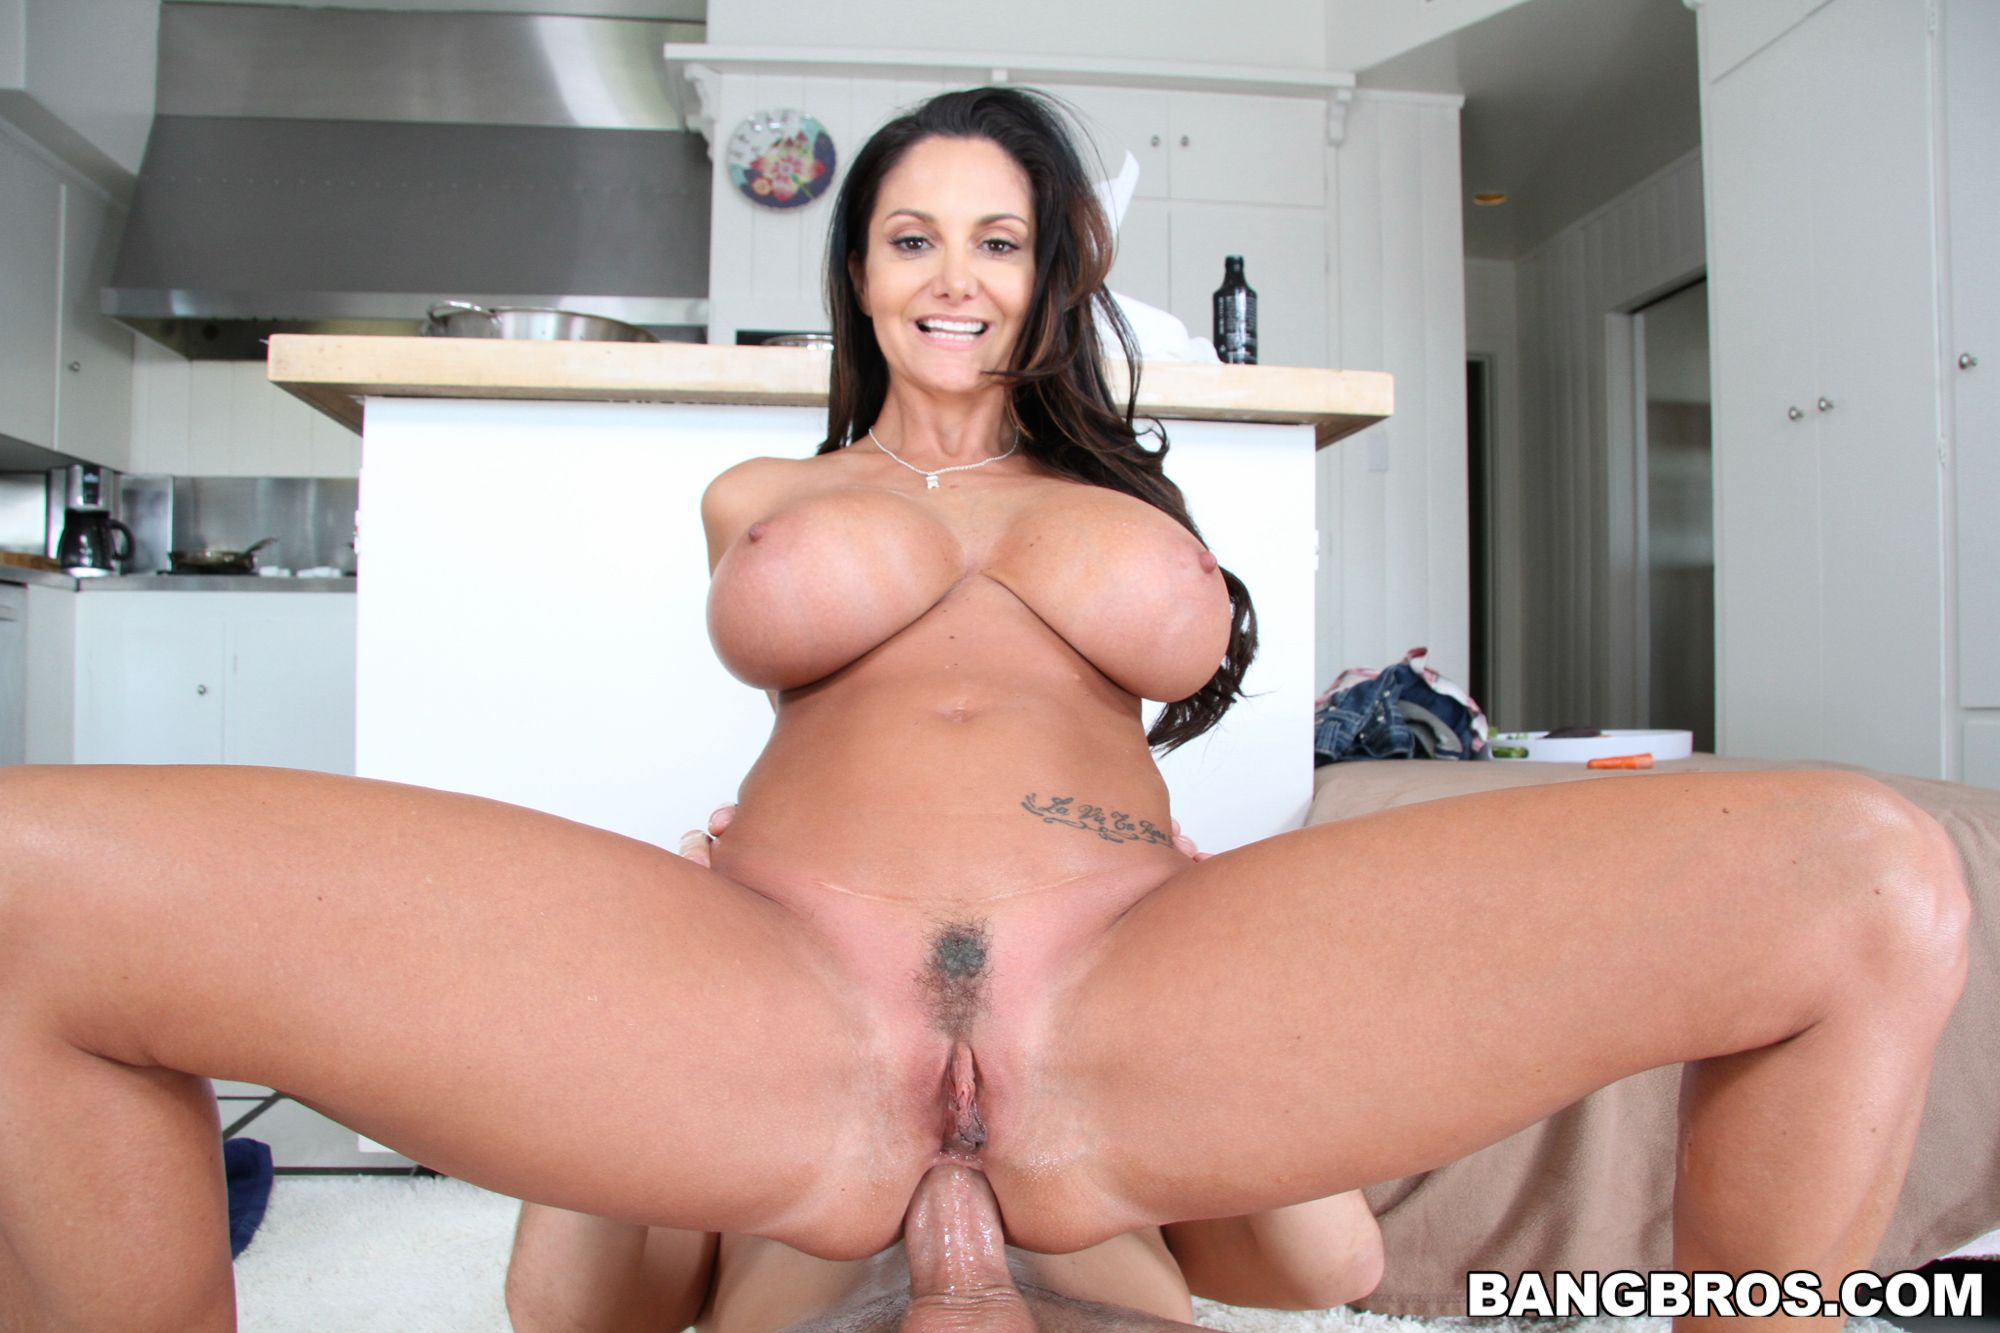 Anal And Big Boobs big tit milf anal - new sex images. comments: 2